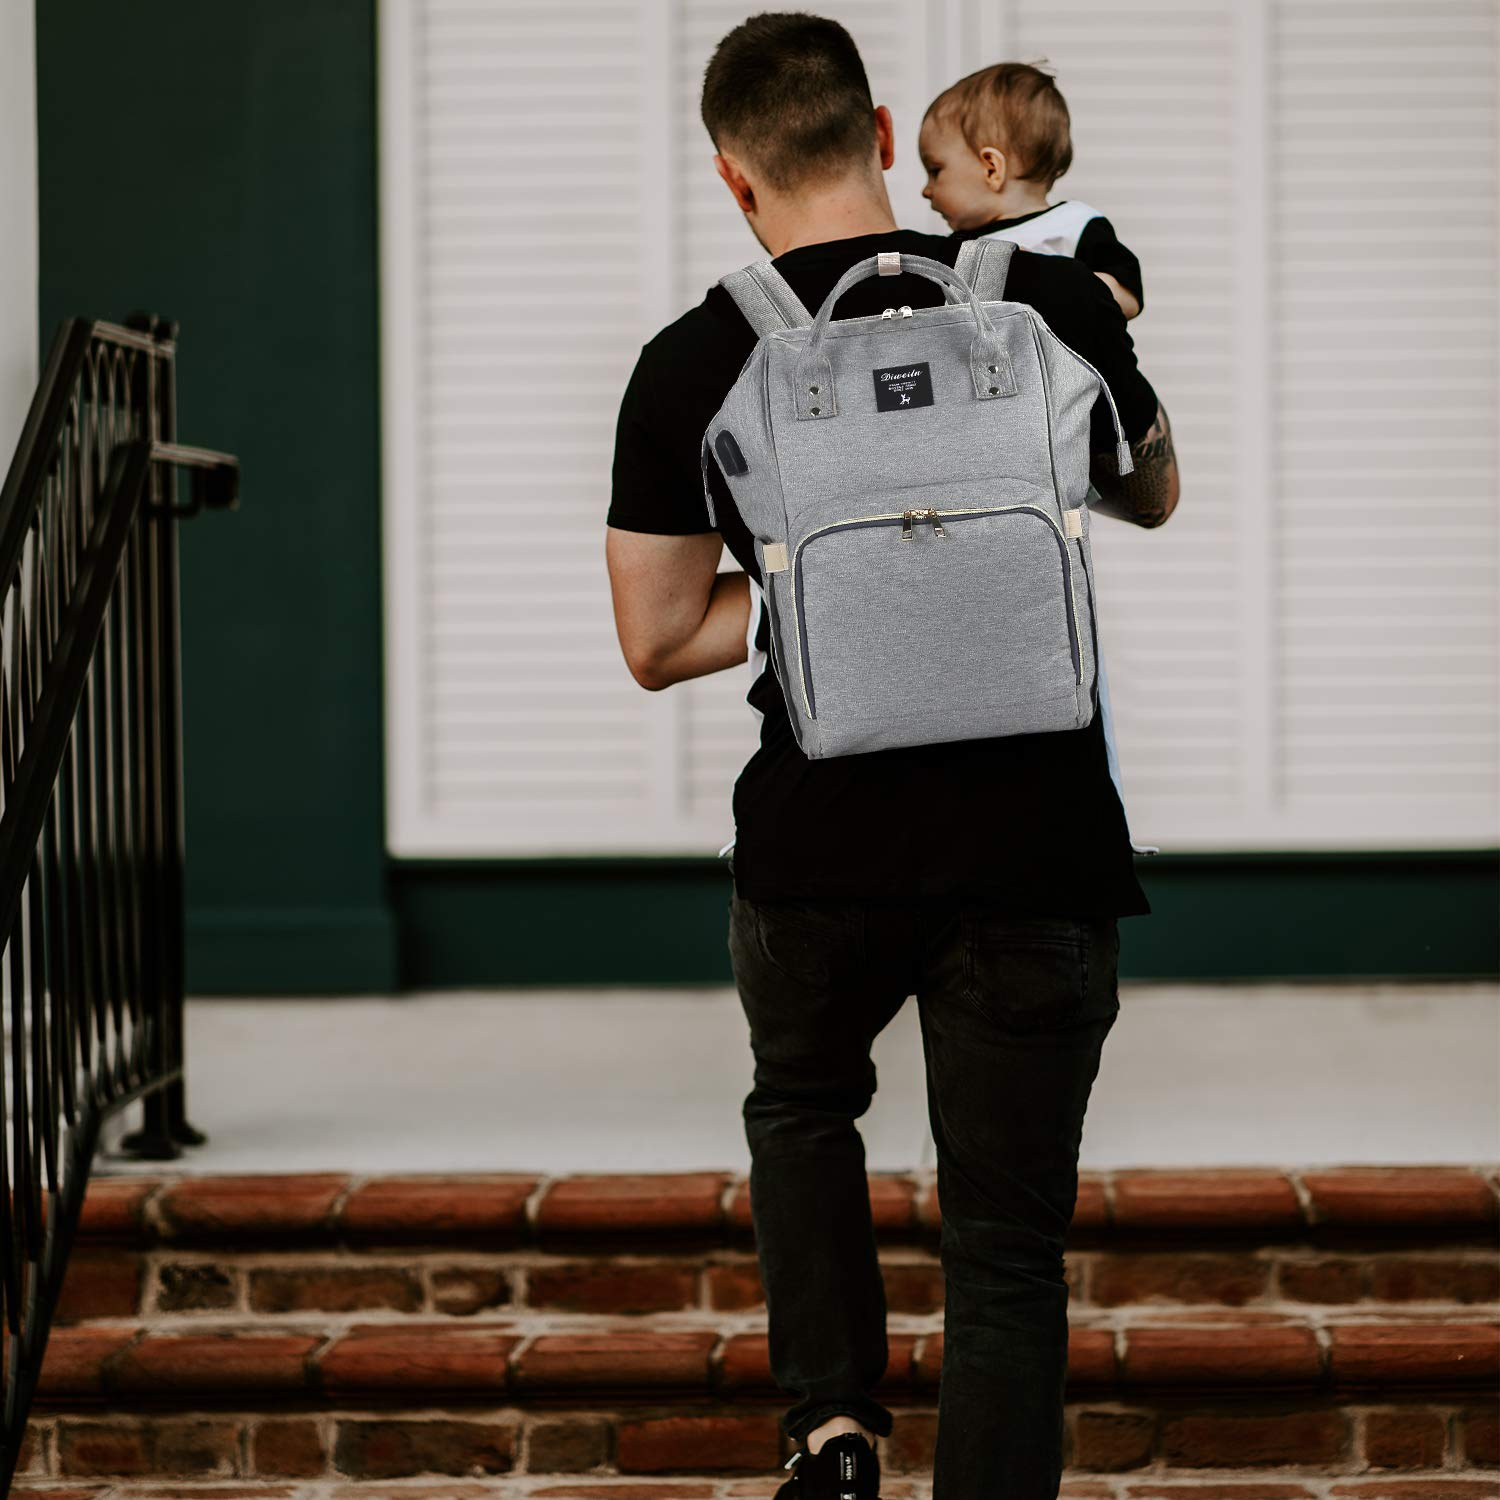 Navy Blue3 Large Capacity Diaper Tote Bag Multi-Function Waterproof Travel Backpack Organizer with Stroller Straps for Mom Dad Work or Outing Baby Nappy Changing Backpack